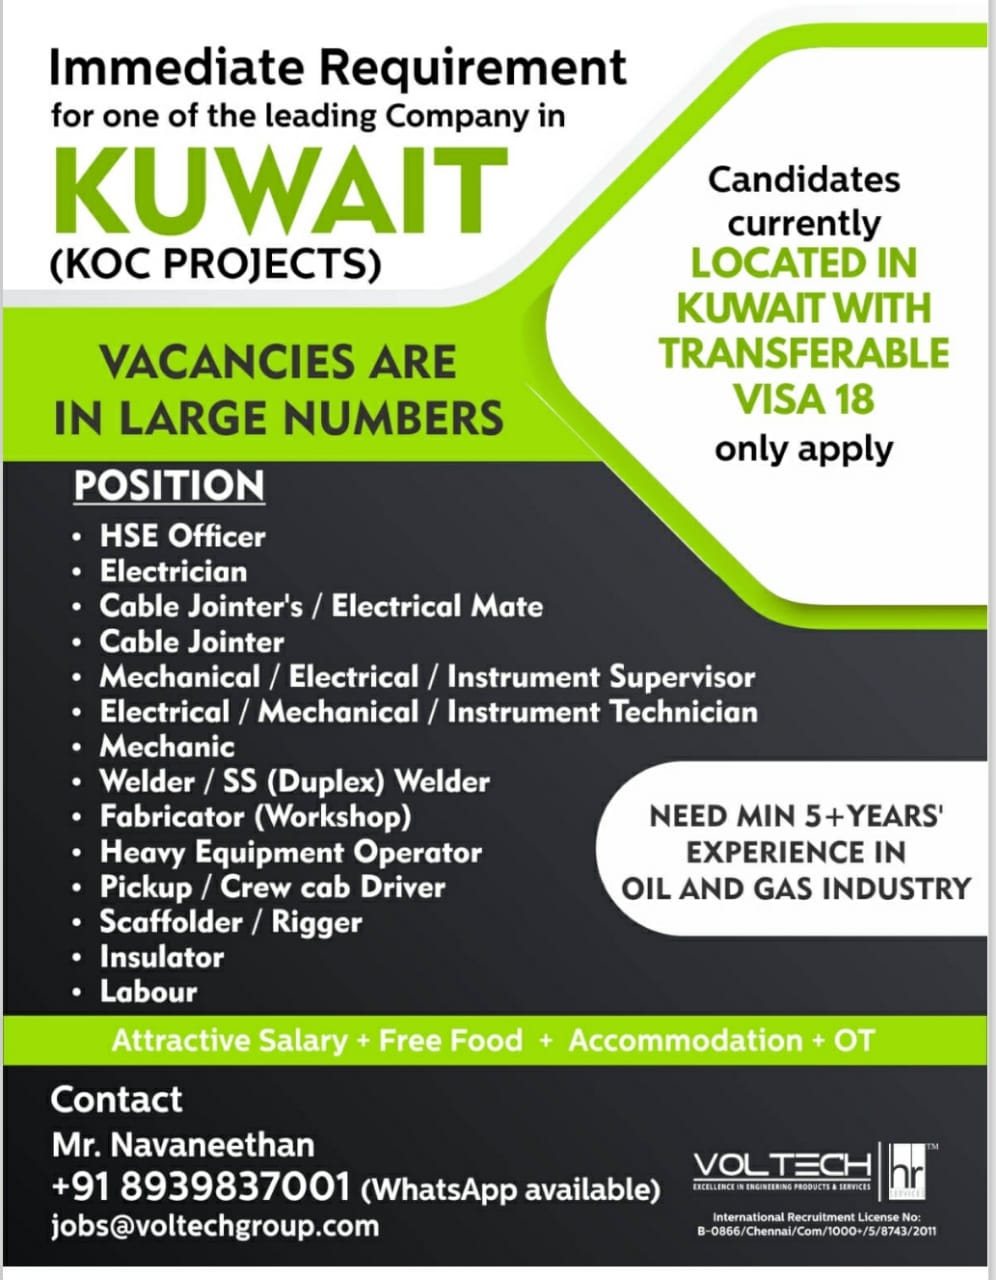 Immediate Requirement for one of the leading Company in KUWAIT (KOC PROJECTS)